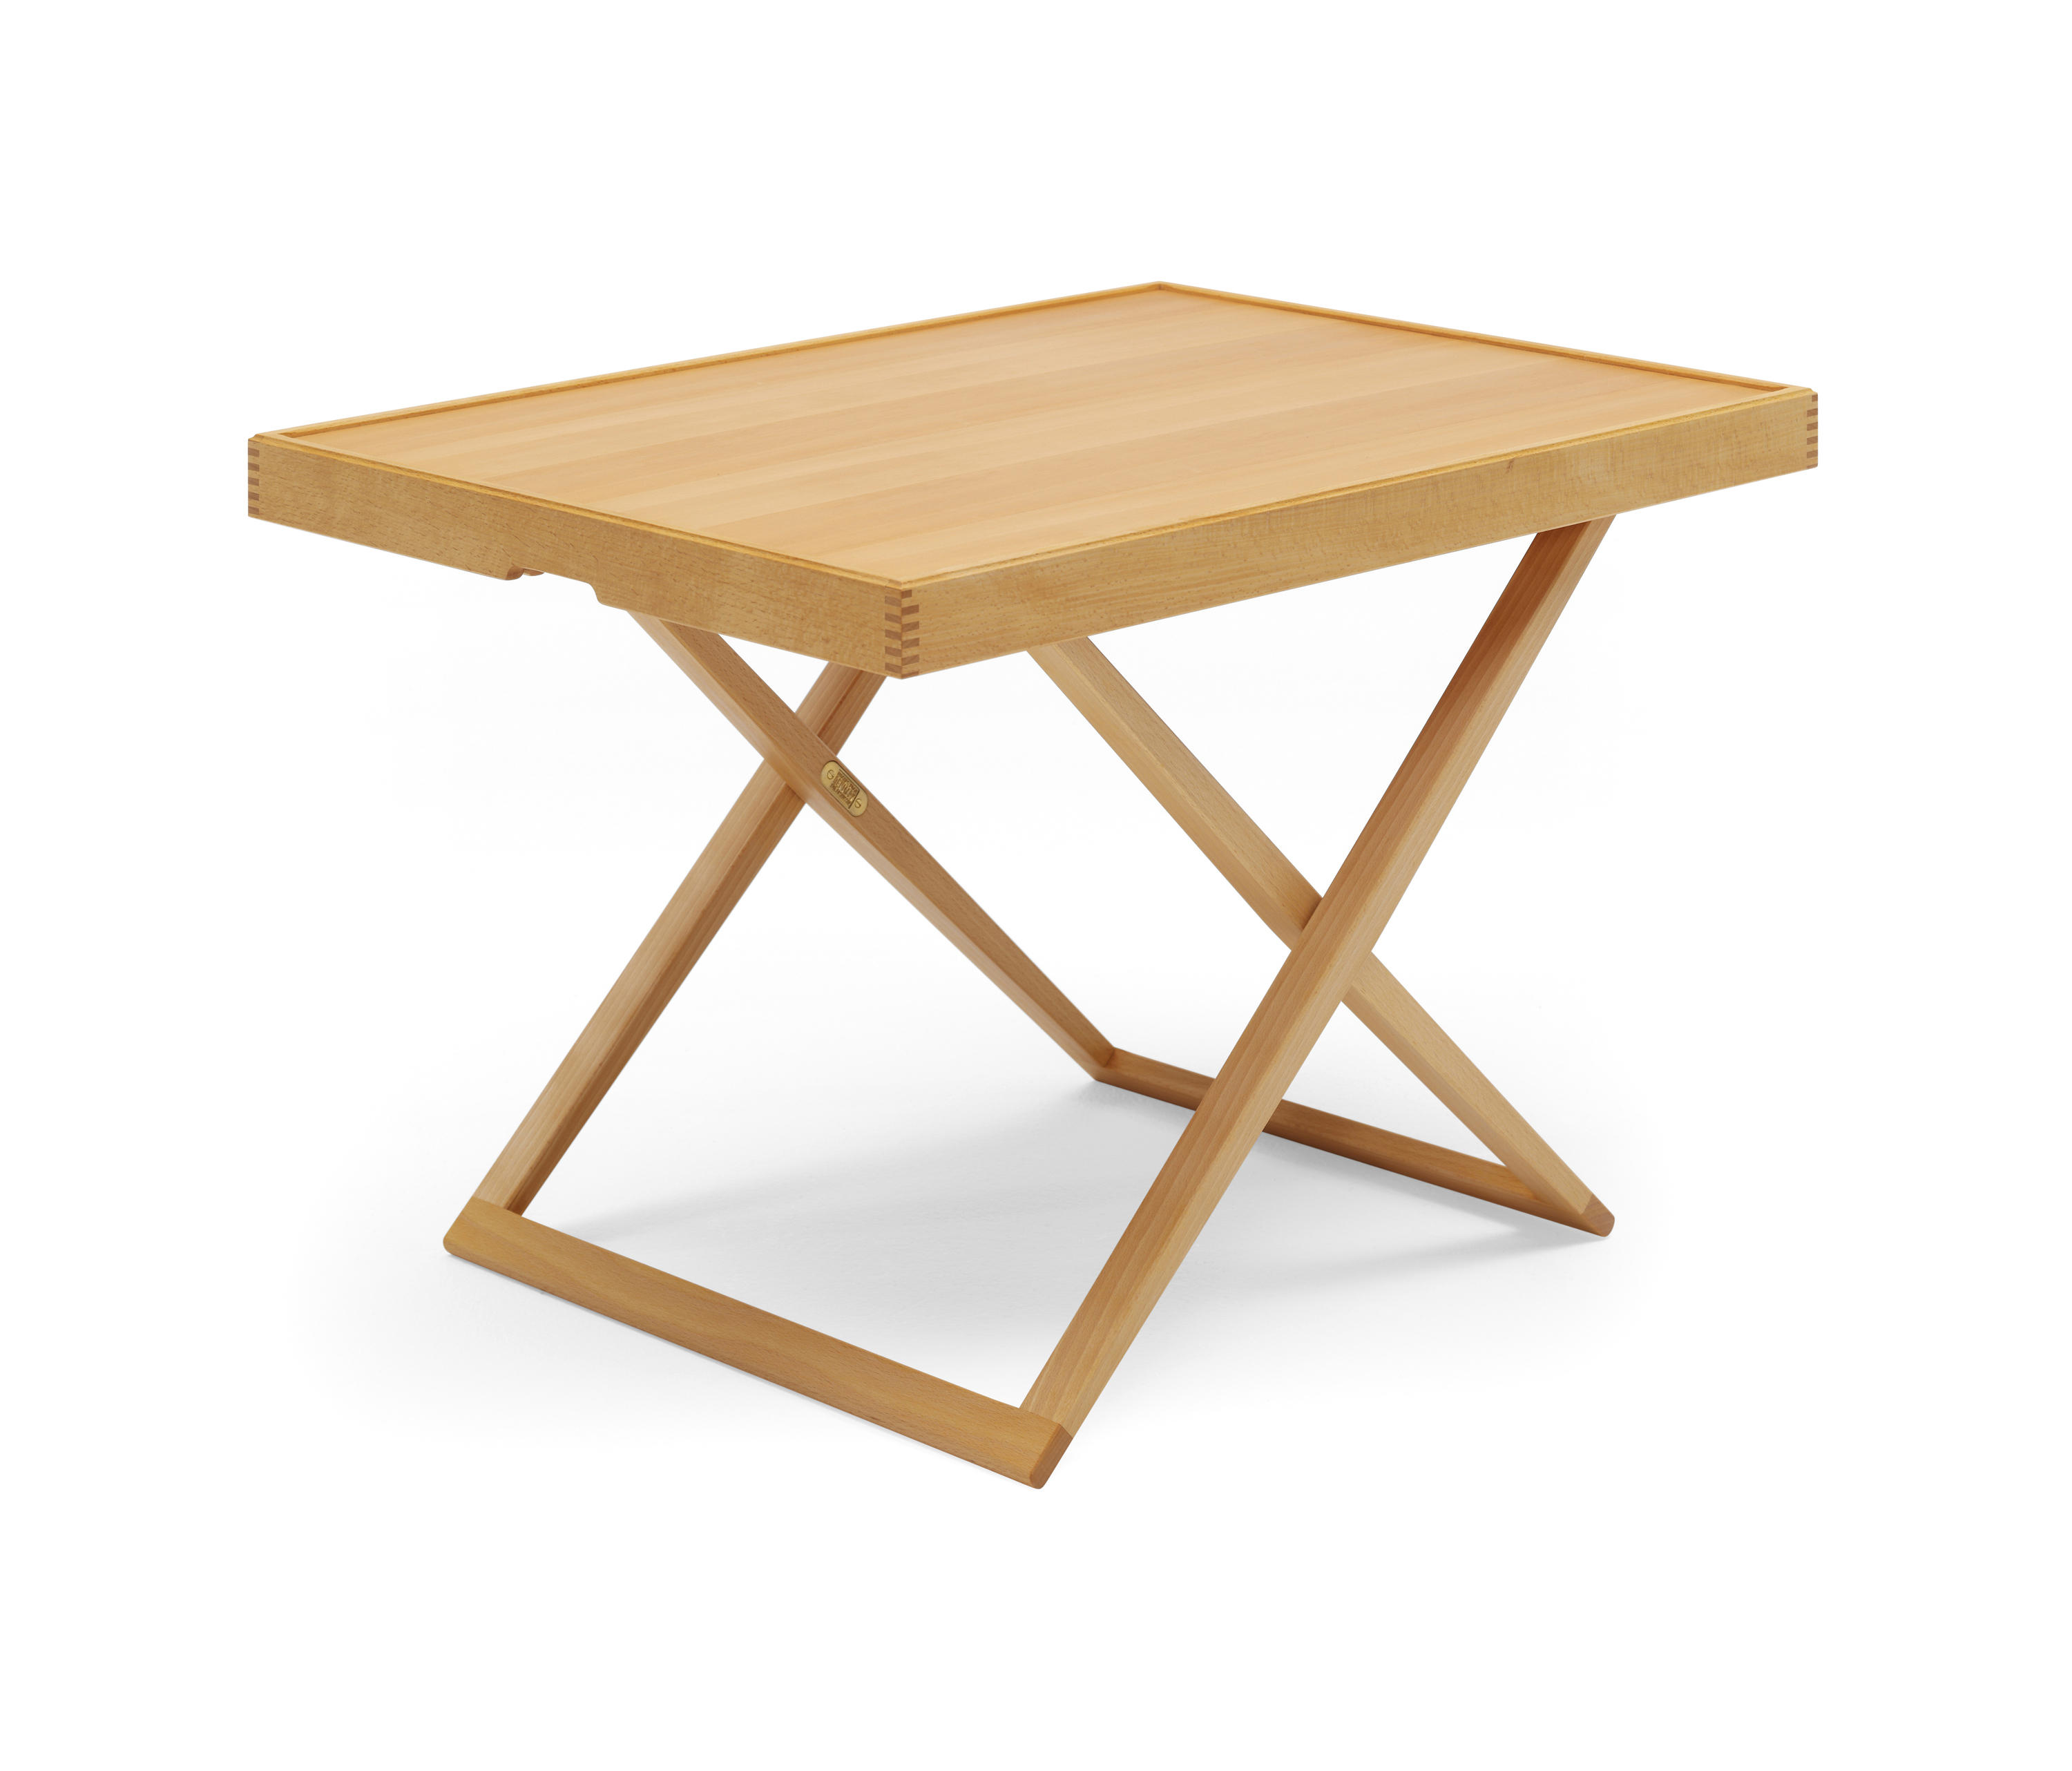 MK FOLDING TABLE Side tables from Carl Hansen & S¸n